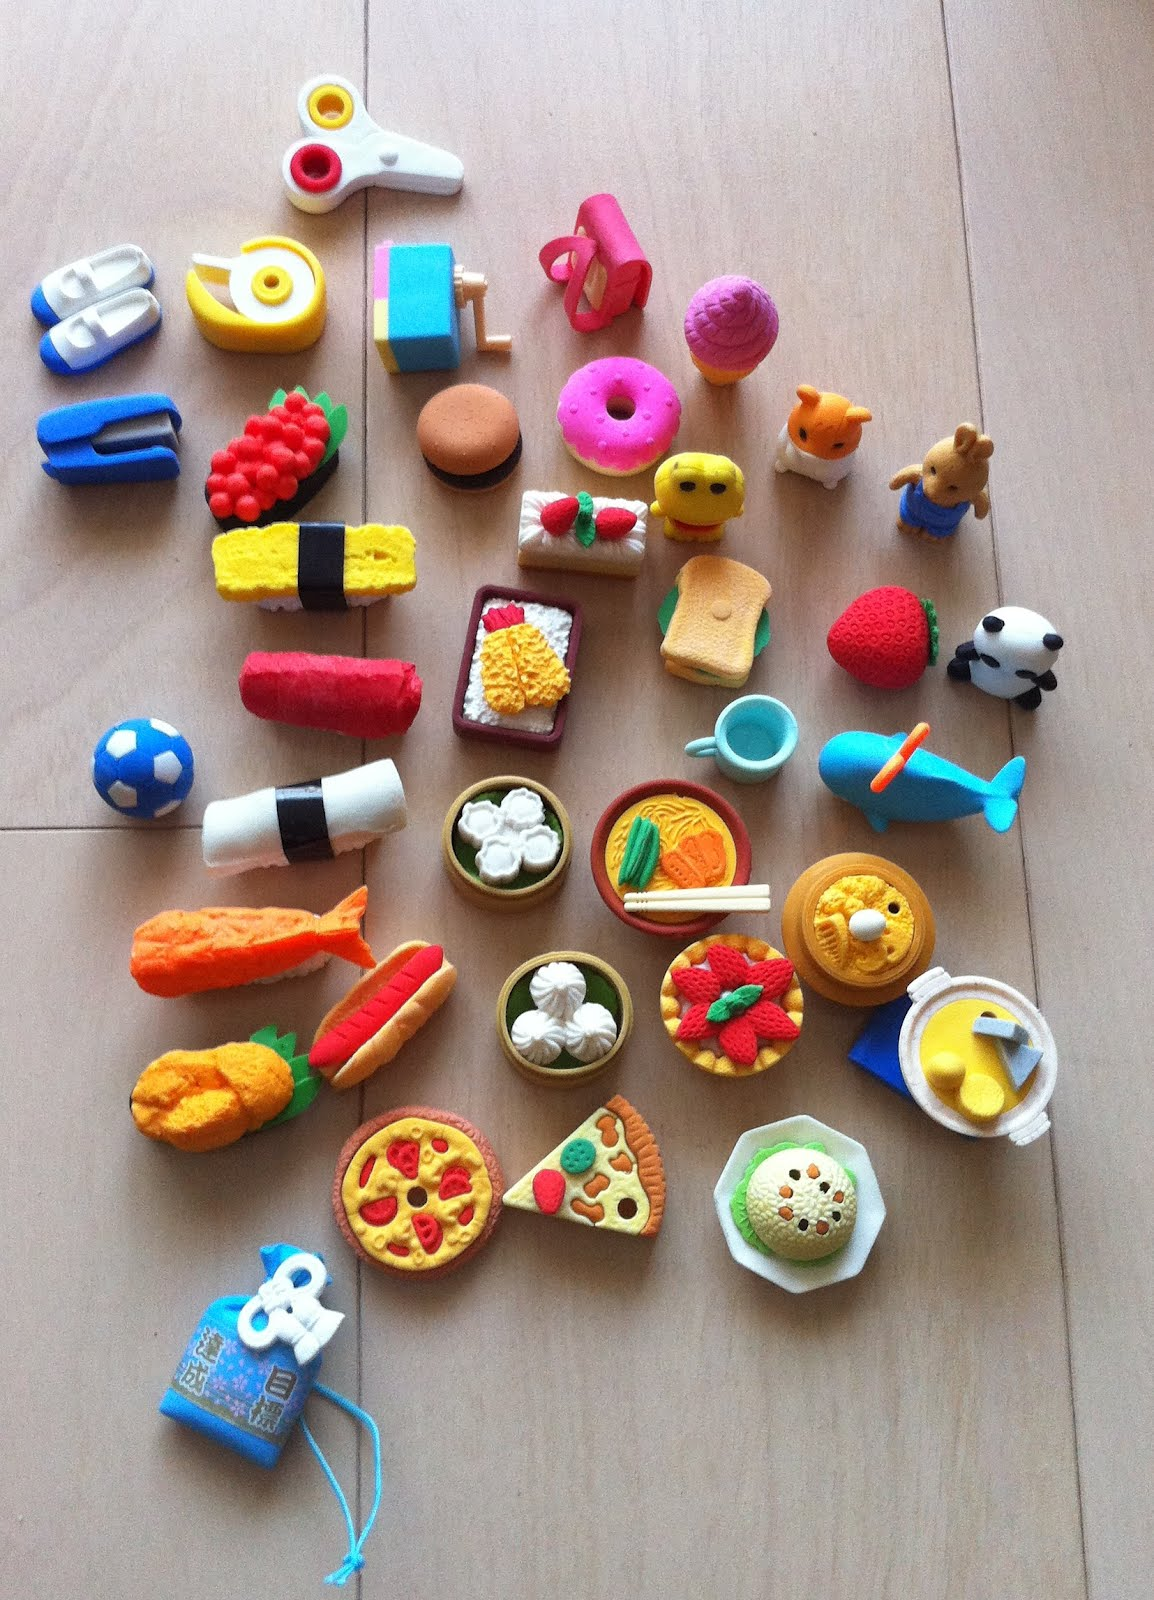 The Plastic Rubbers In Above Picture Are Some Of Many That My Daughter Has They Are So Well Made And It Is Pity To Rub Off Something With Them